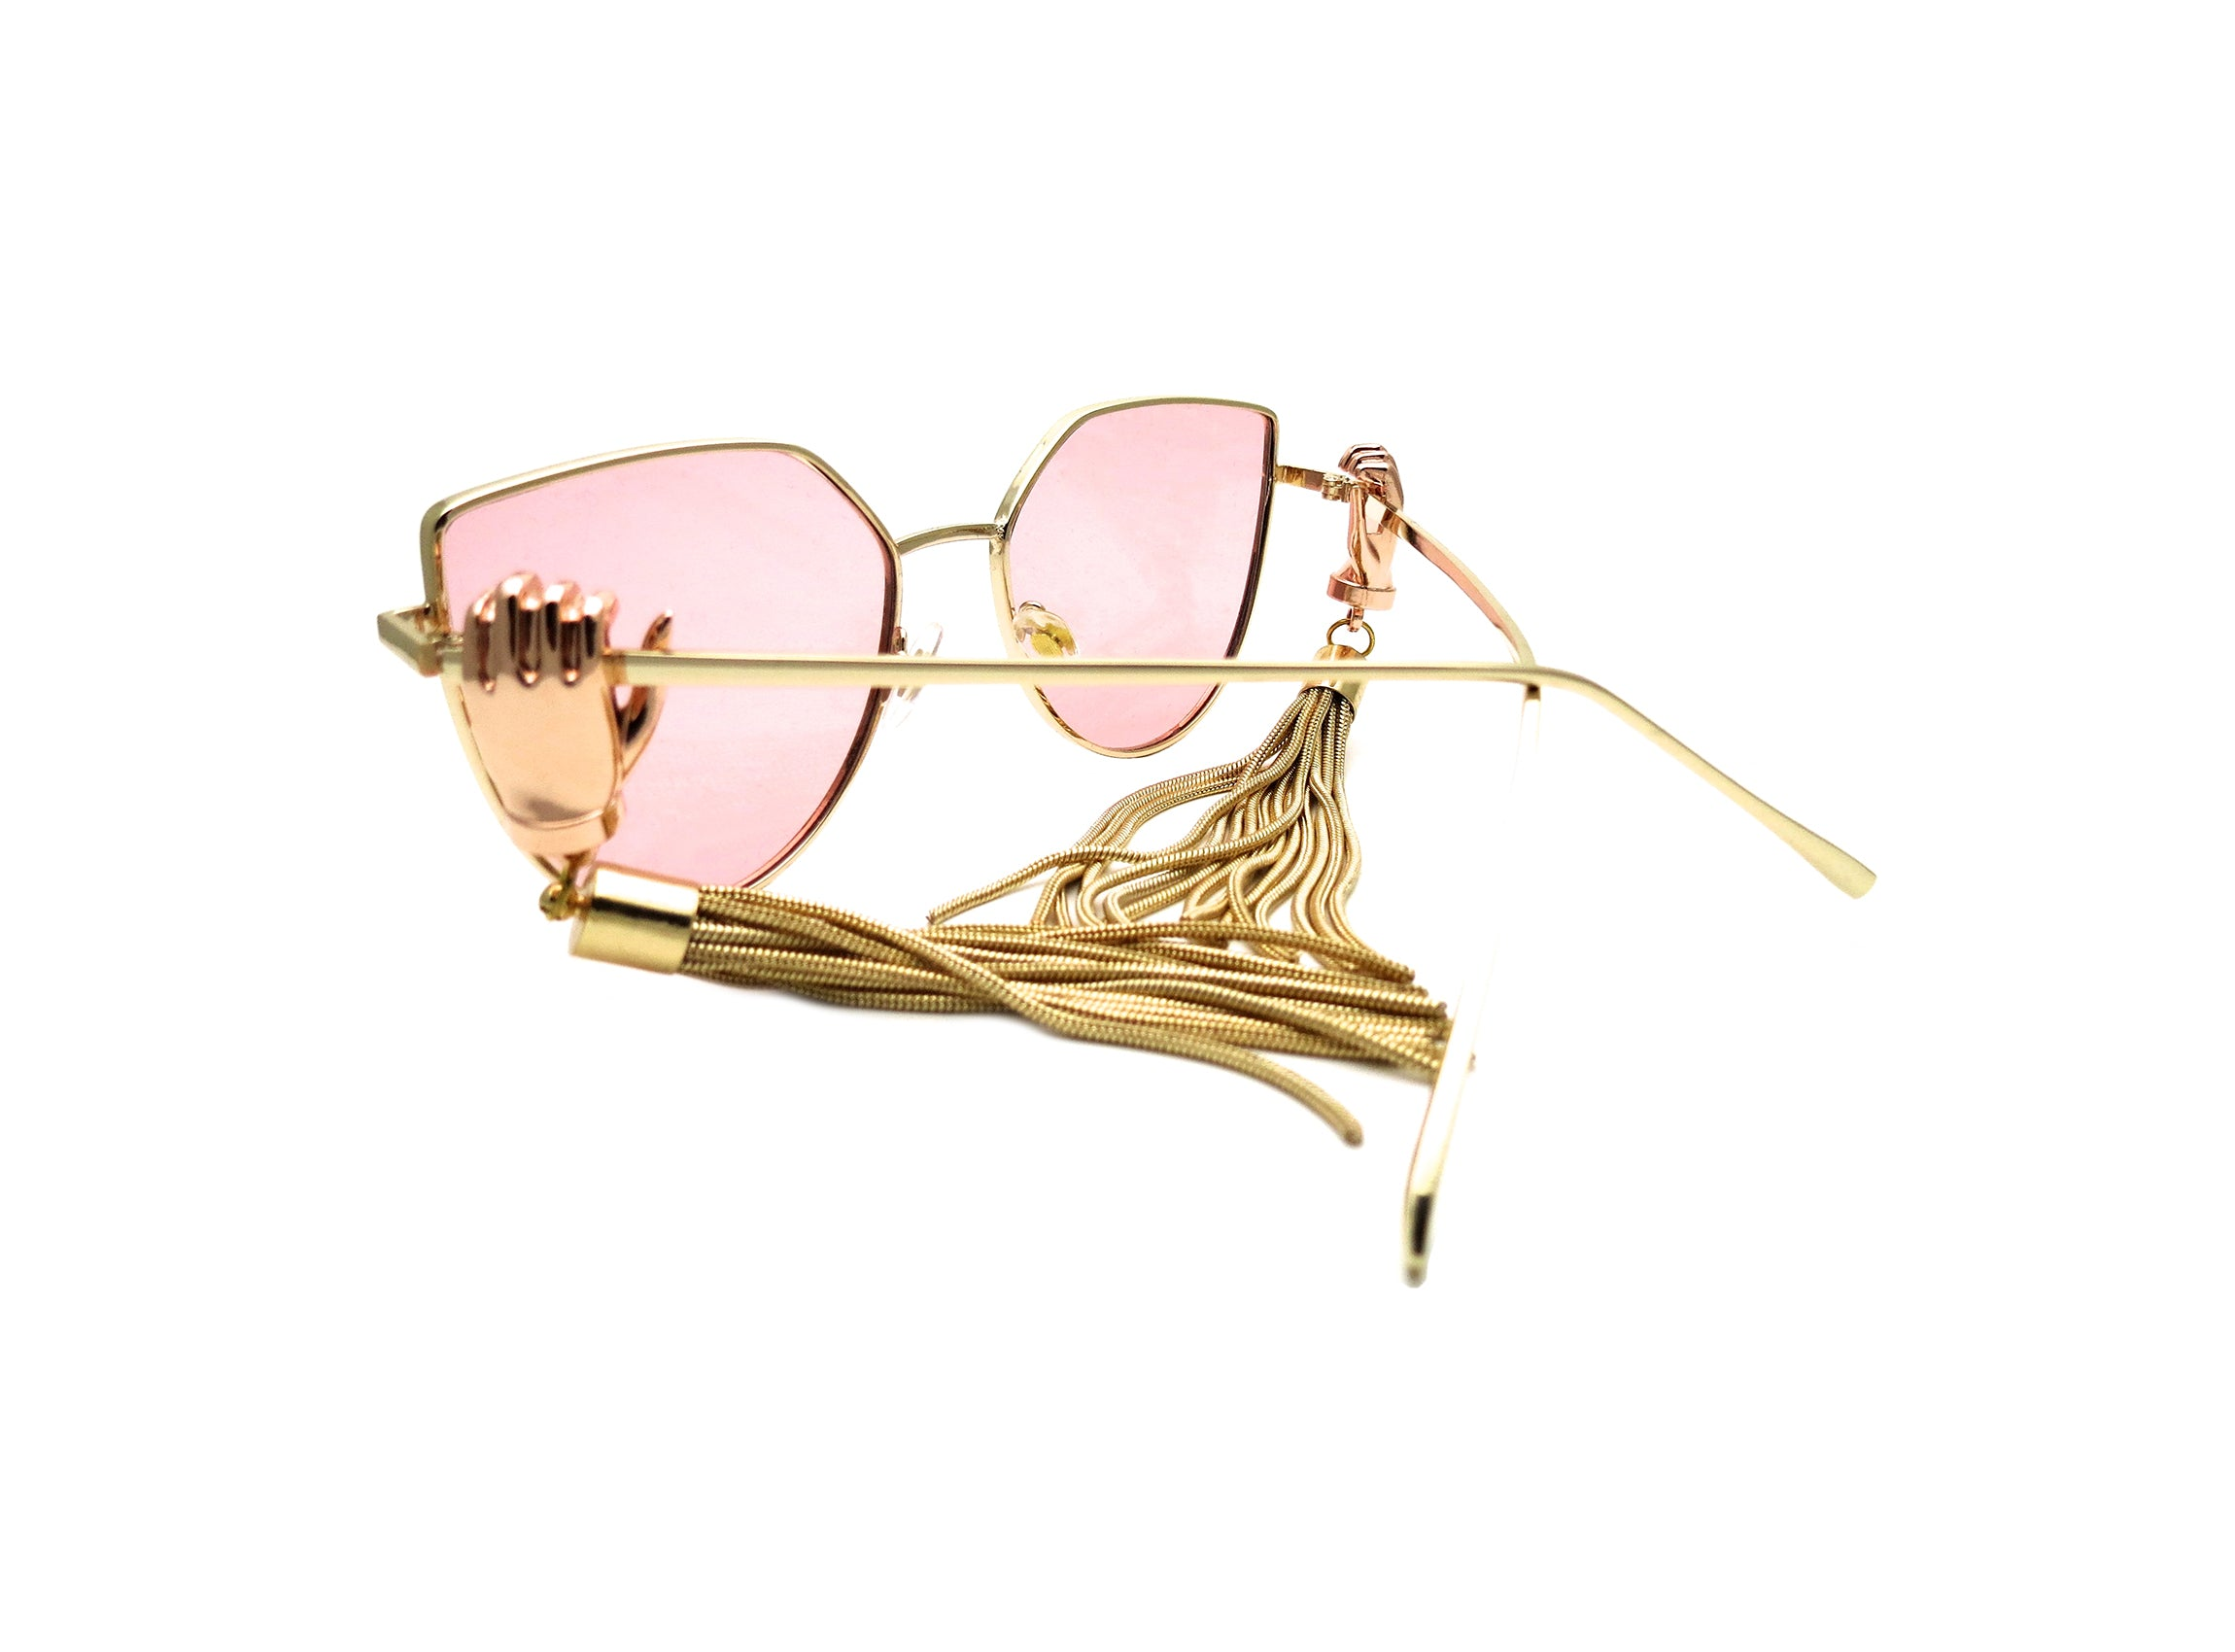 BAZZAR - Pink toned sunglasses with circus hands and gold tassel finished in an elegant gold frame.